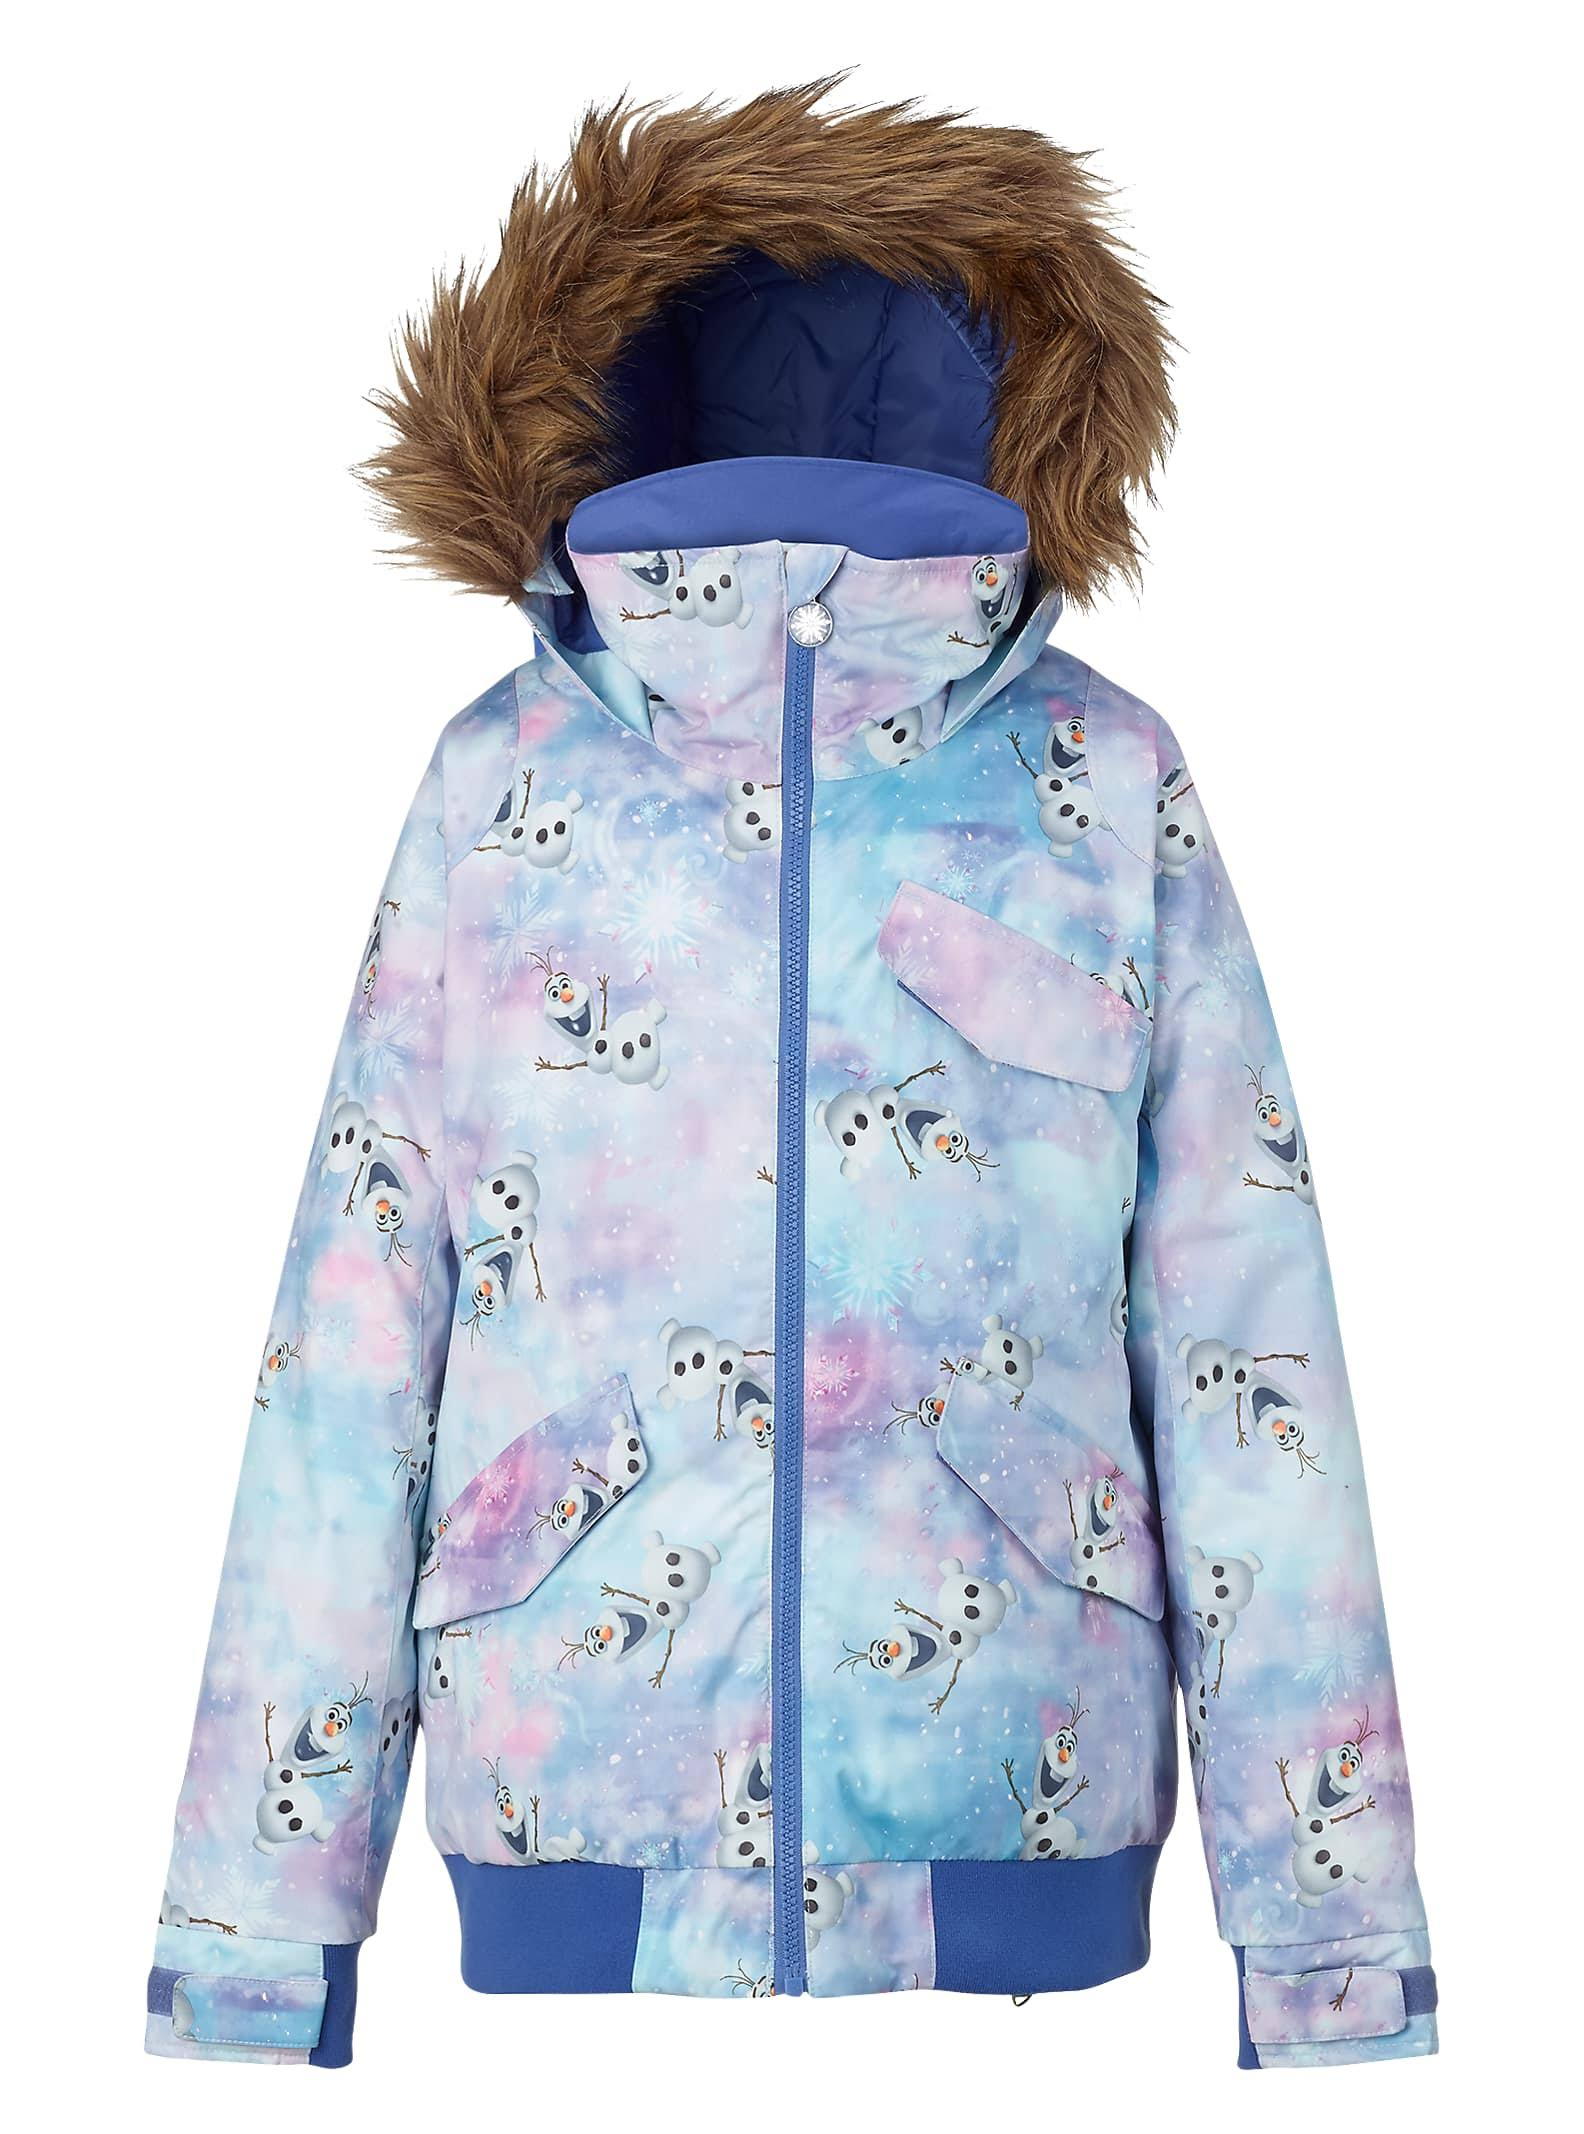 Burton Youth Girls Twist Bomber Jacket, Olaf Frozen, Small